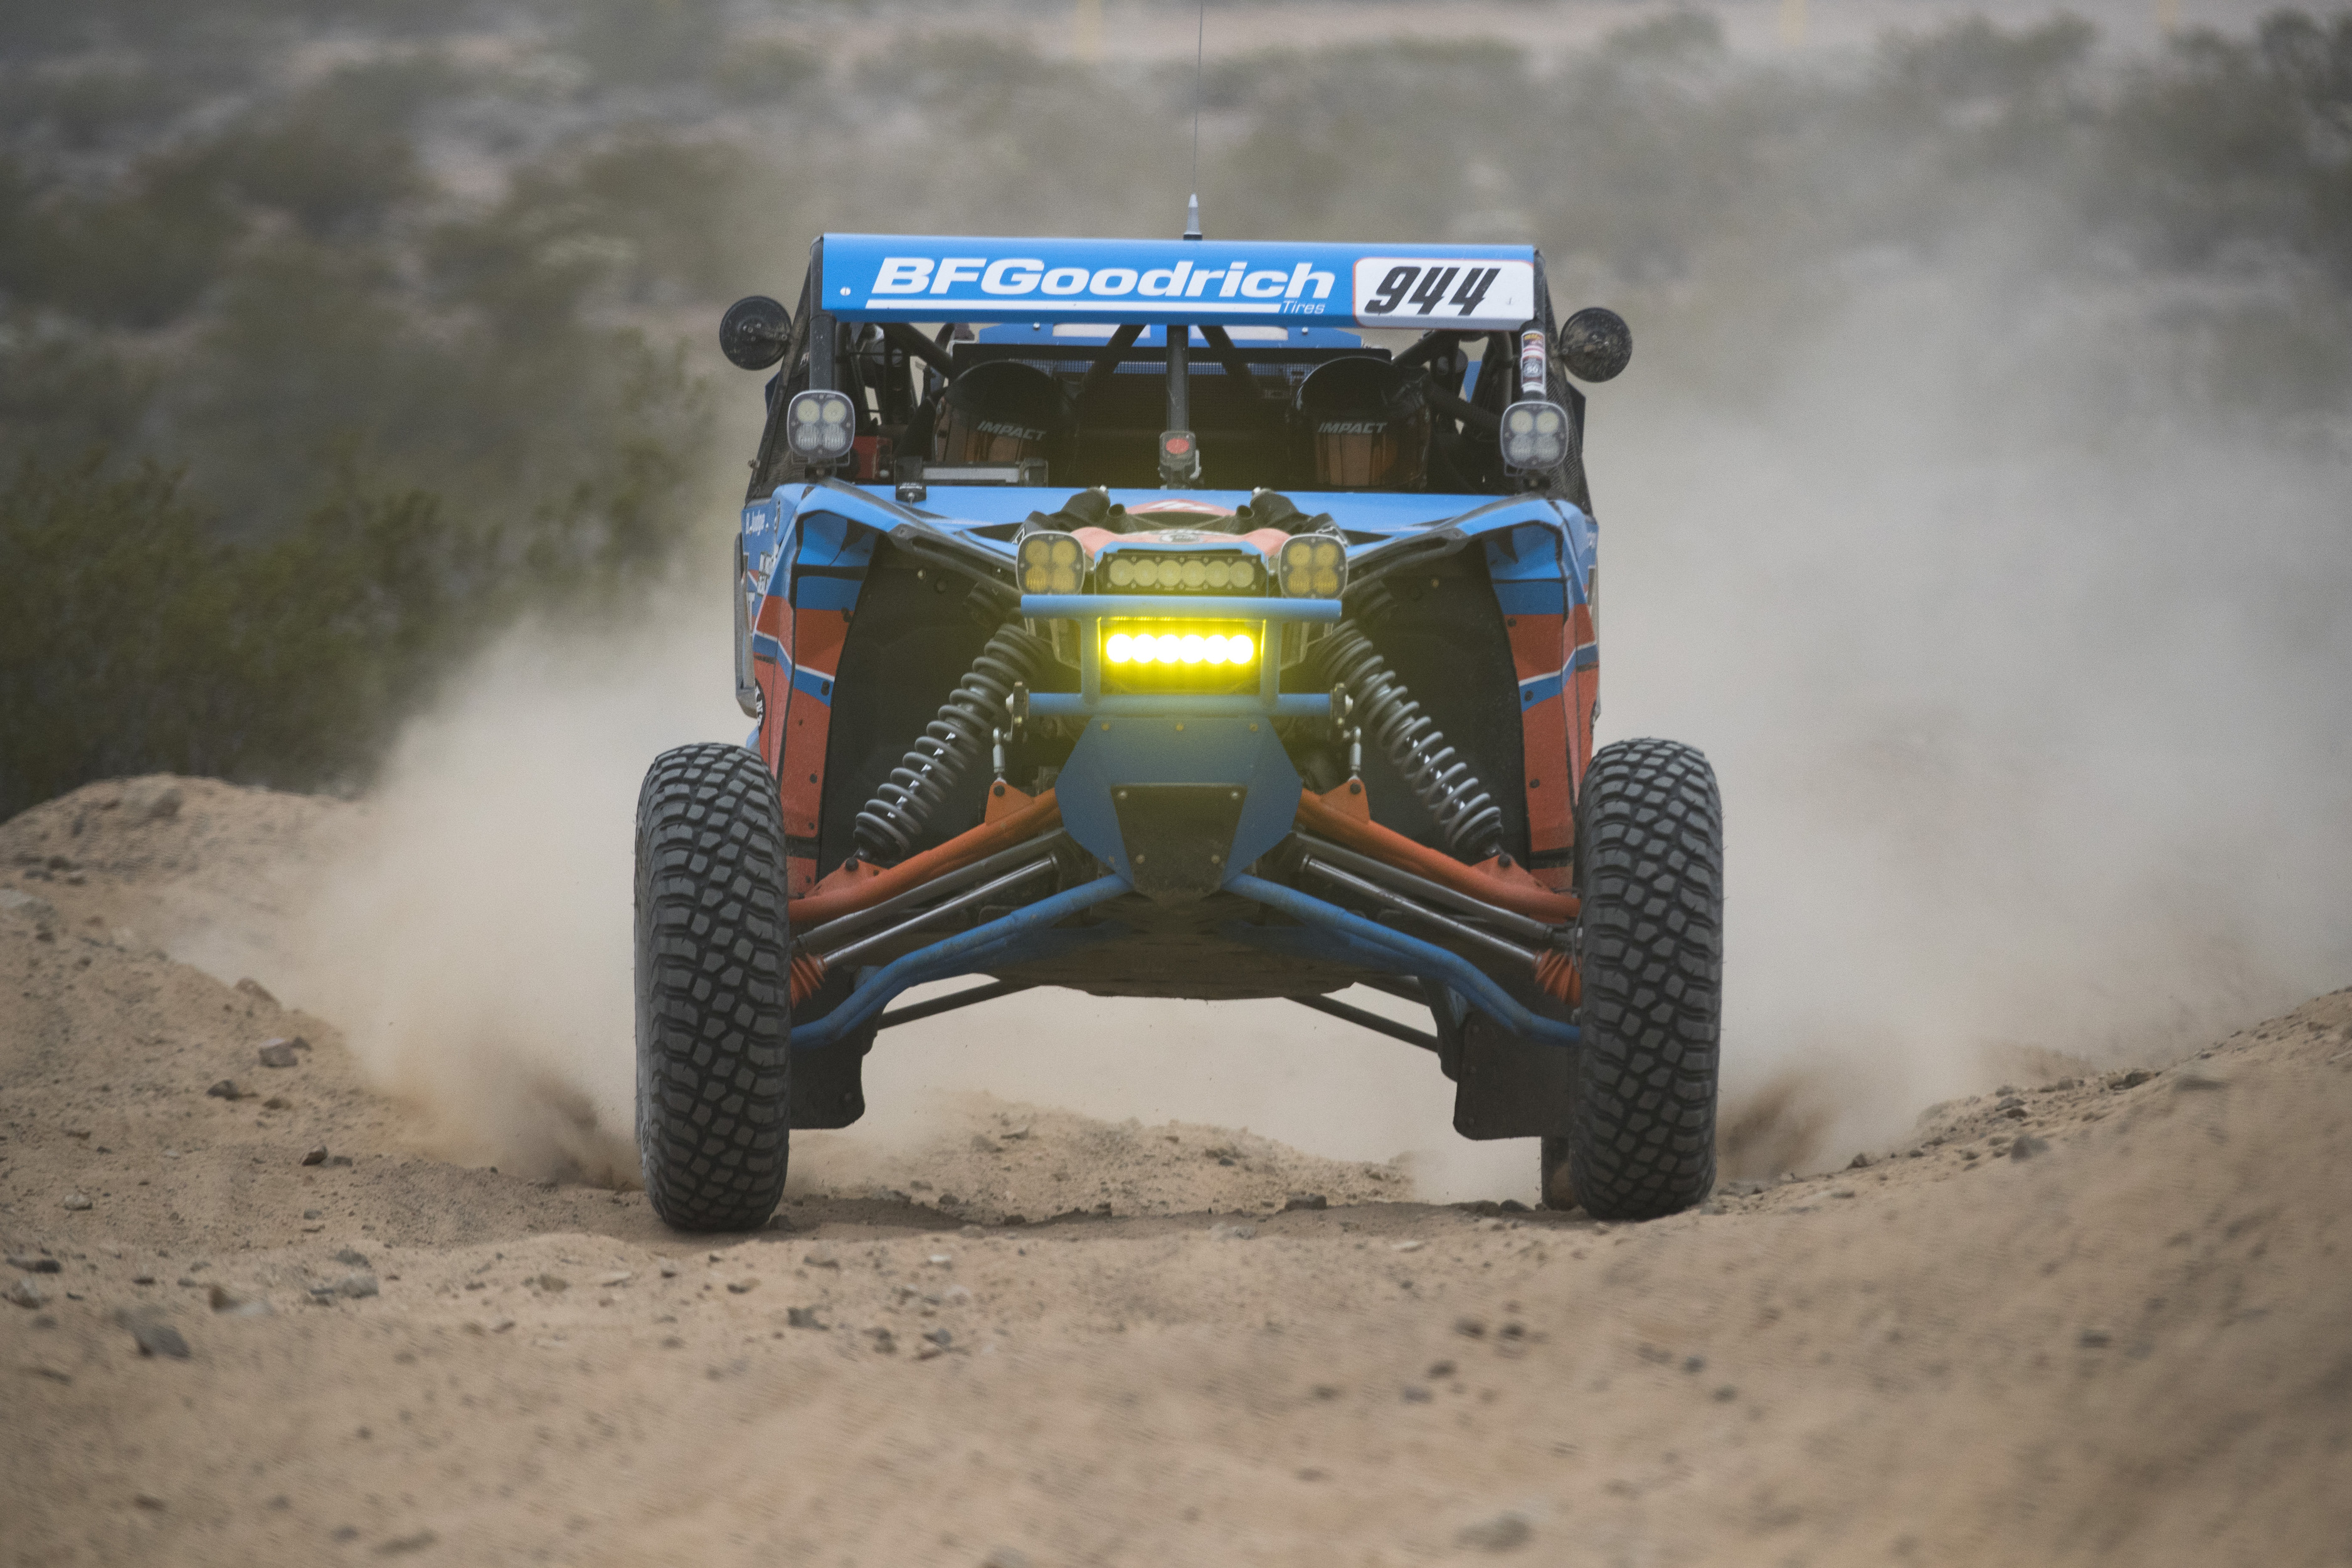 No Limit S Phil Blurton Charging Hard On His Way To 2nd Place Mint 400